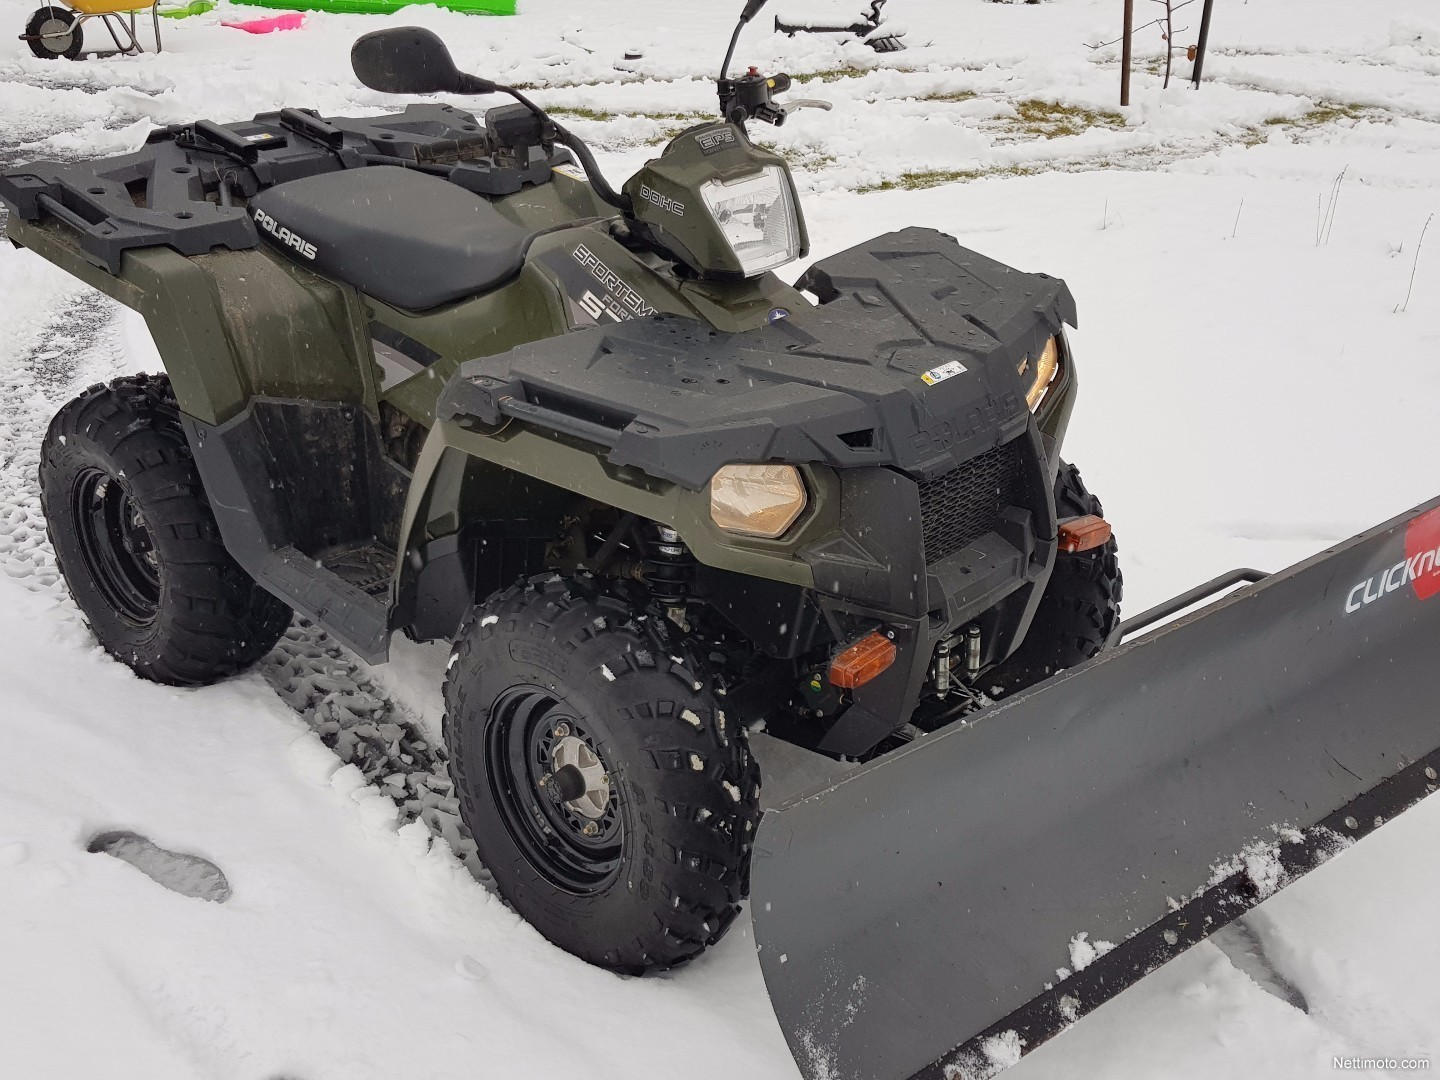 2015 polaris sportsman 570 service manual